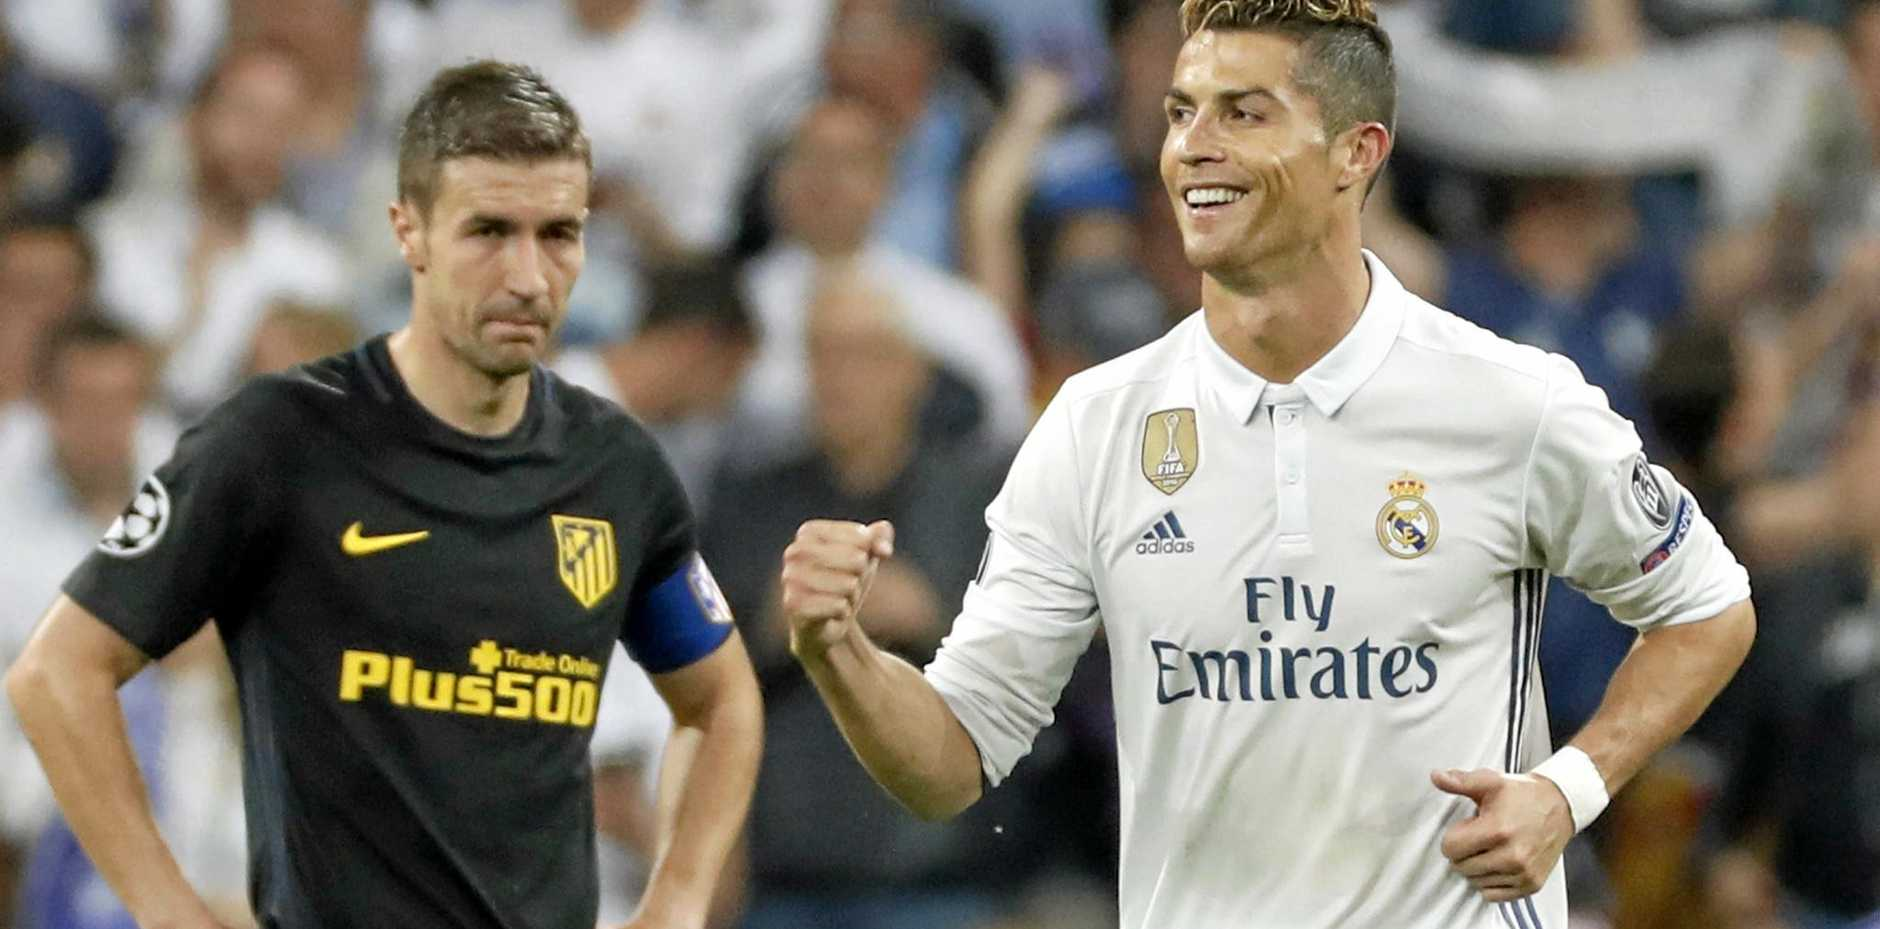 Real Madrid's Portuguese striker Cristiano Ronaldo (right) celebrates scoring the 3-0 during the UEFA Champions League semi-final match between Real Madrid and Atletico Madrid.